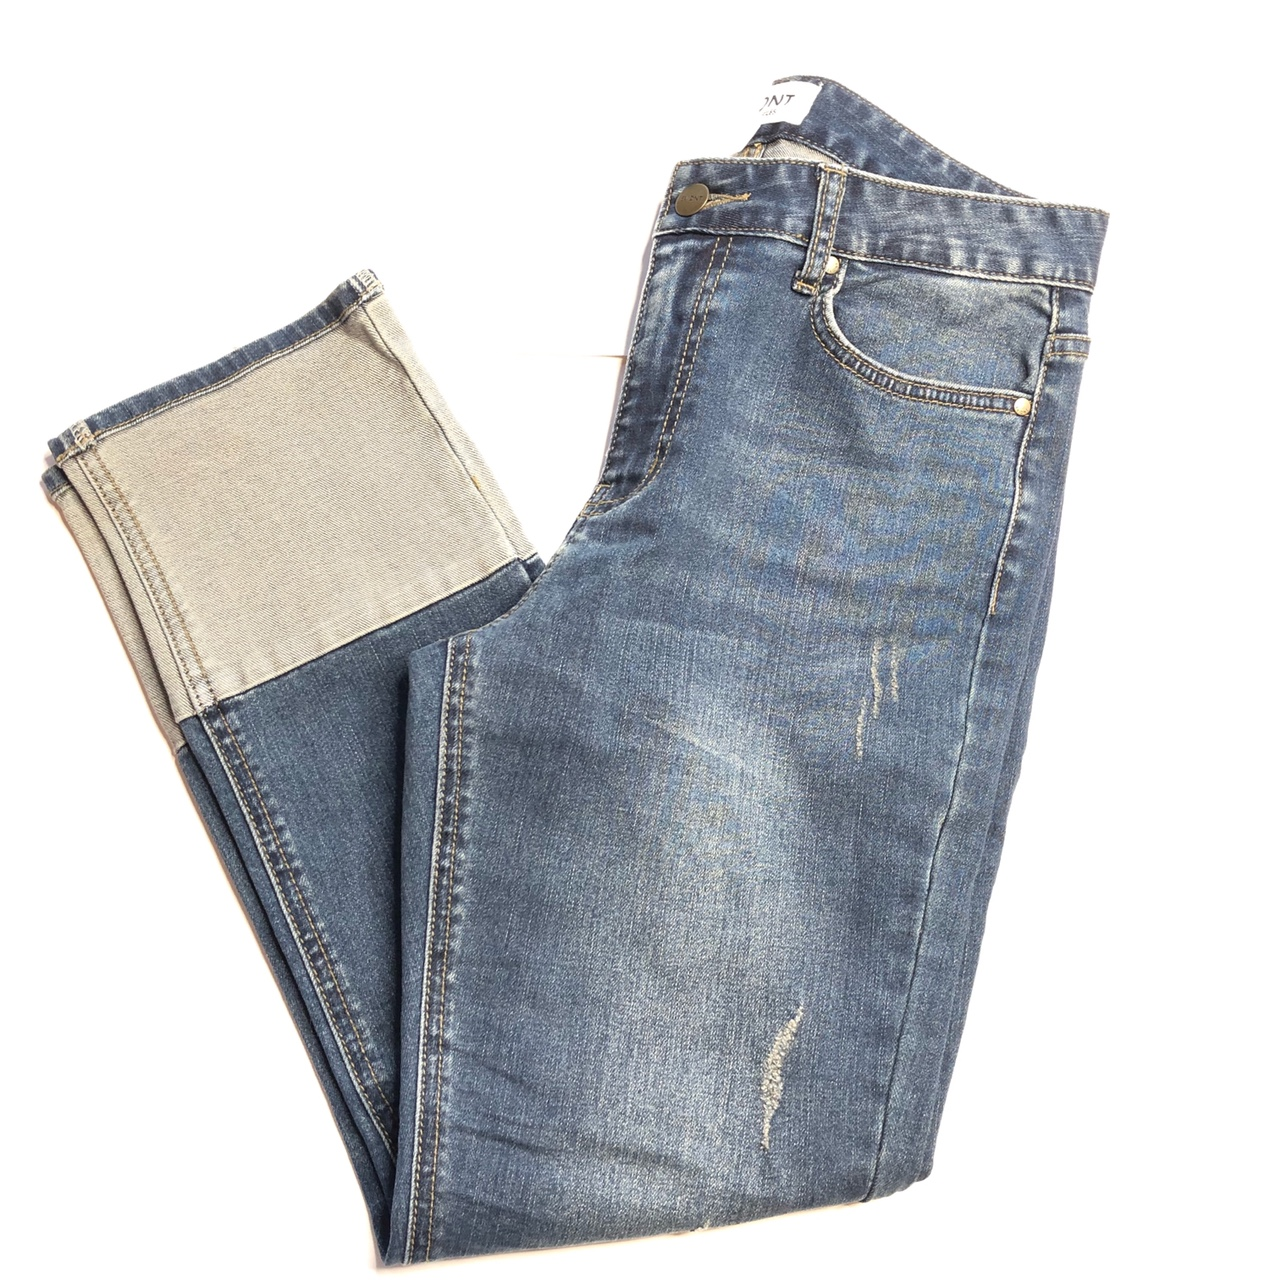 Product Image 1 - Evidnt Los Angeles Jeans Style #